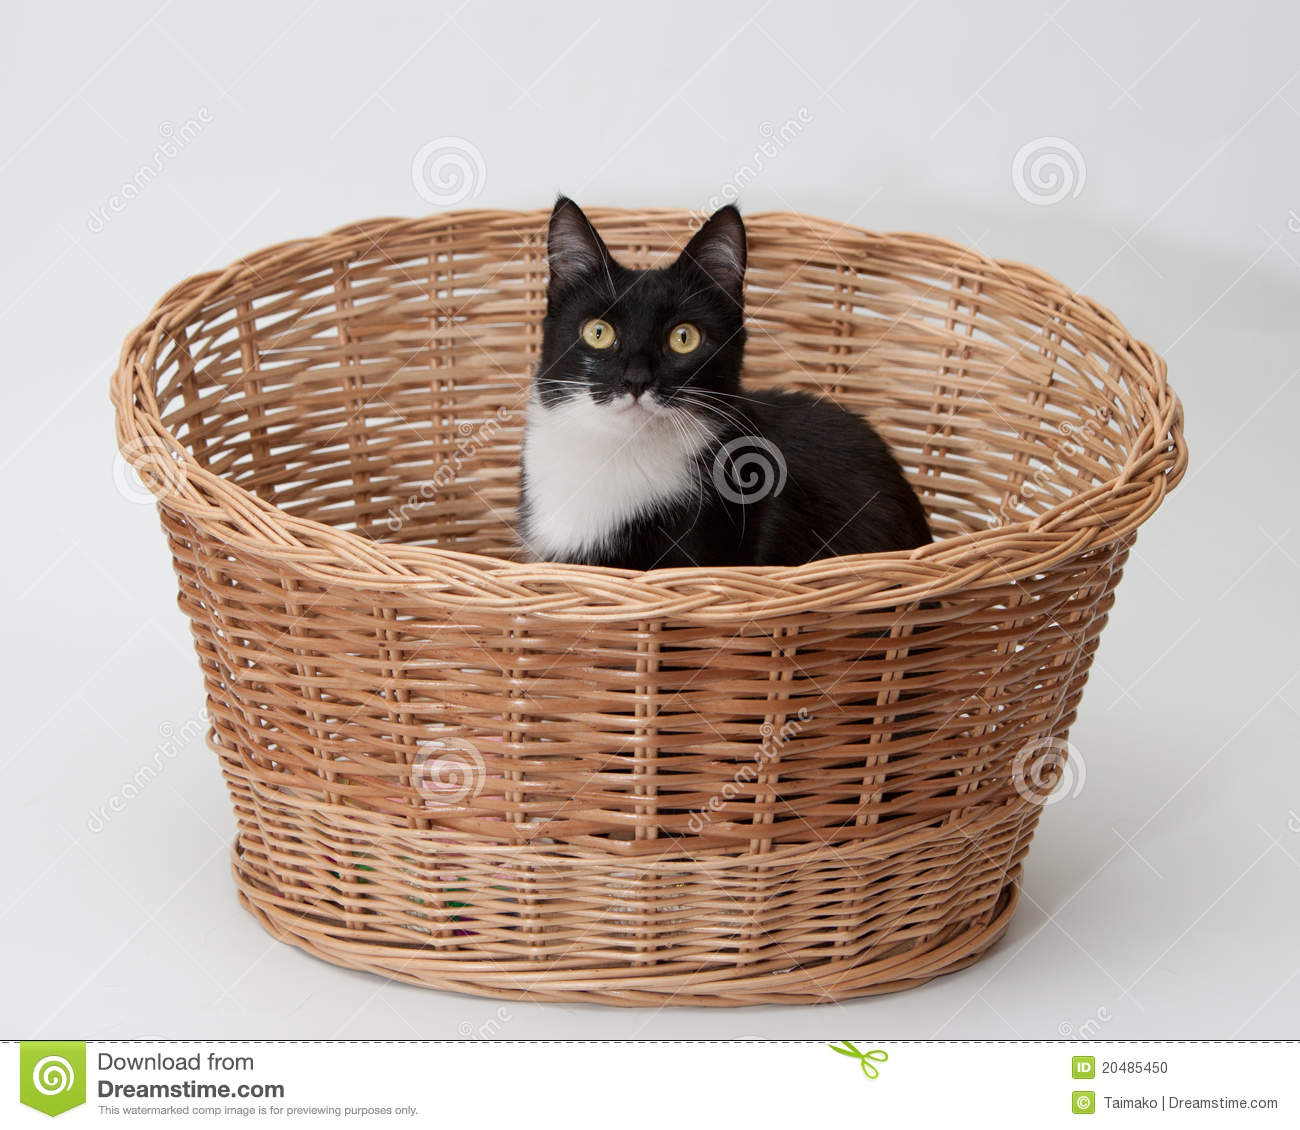 More similar stock images of ` BW cat in the basket isolated `